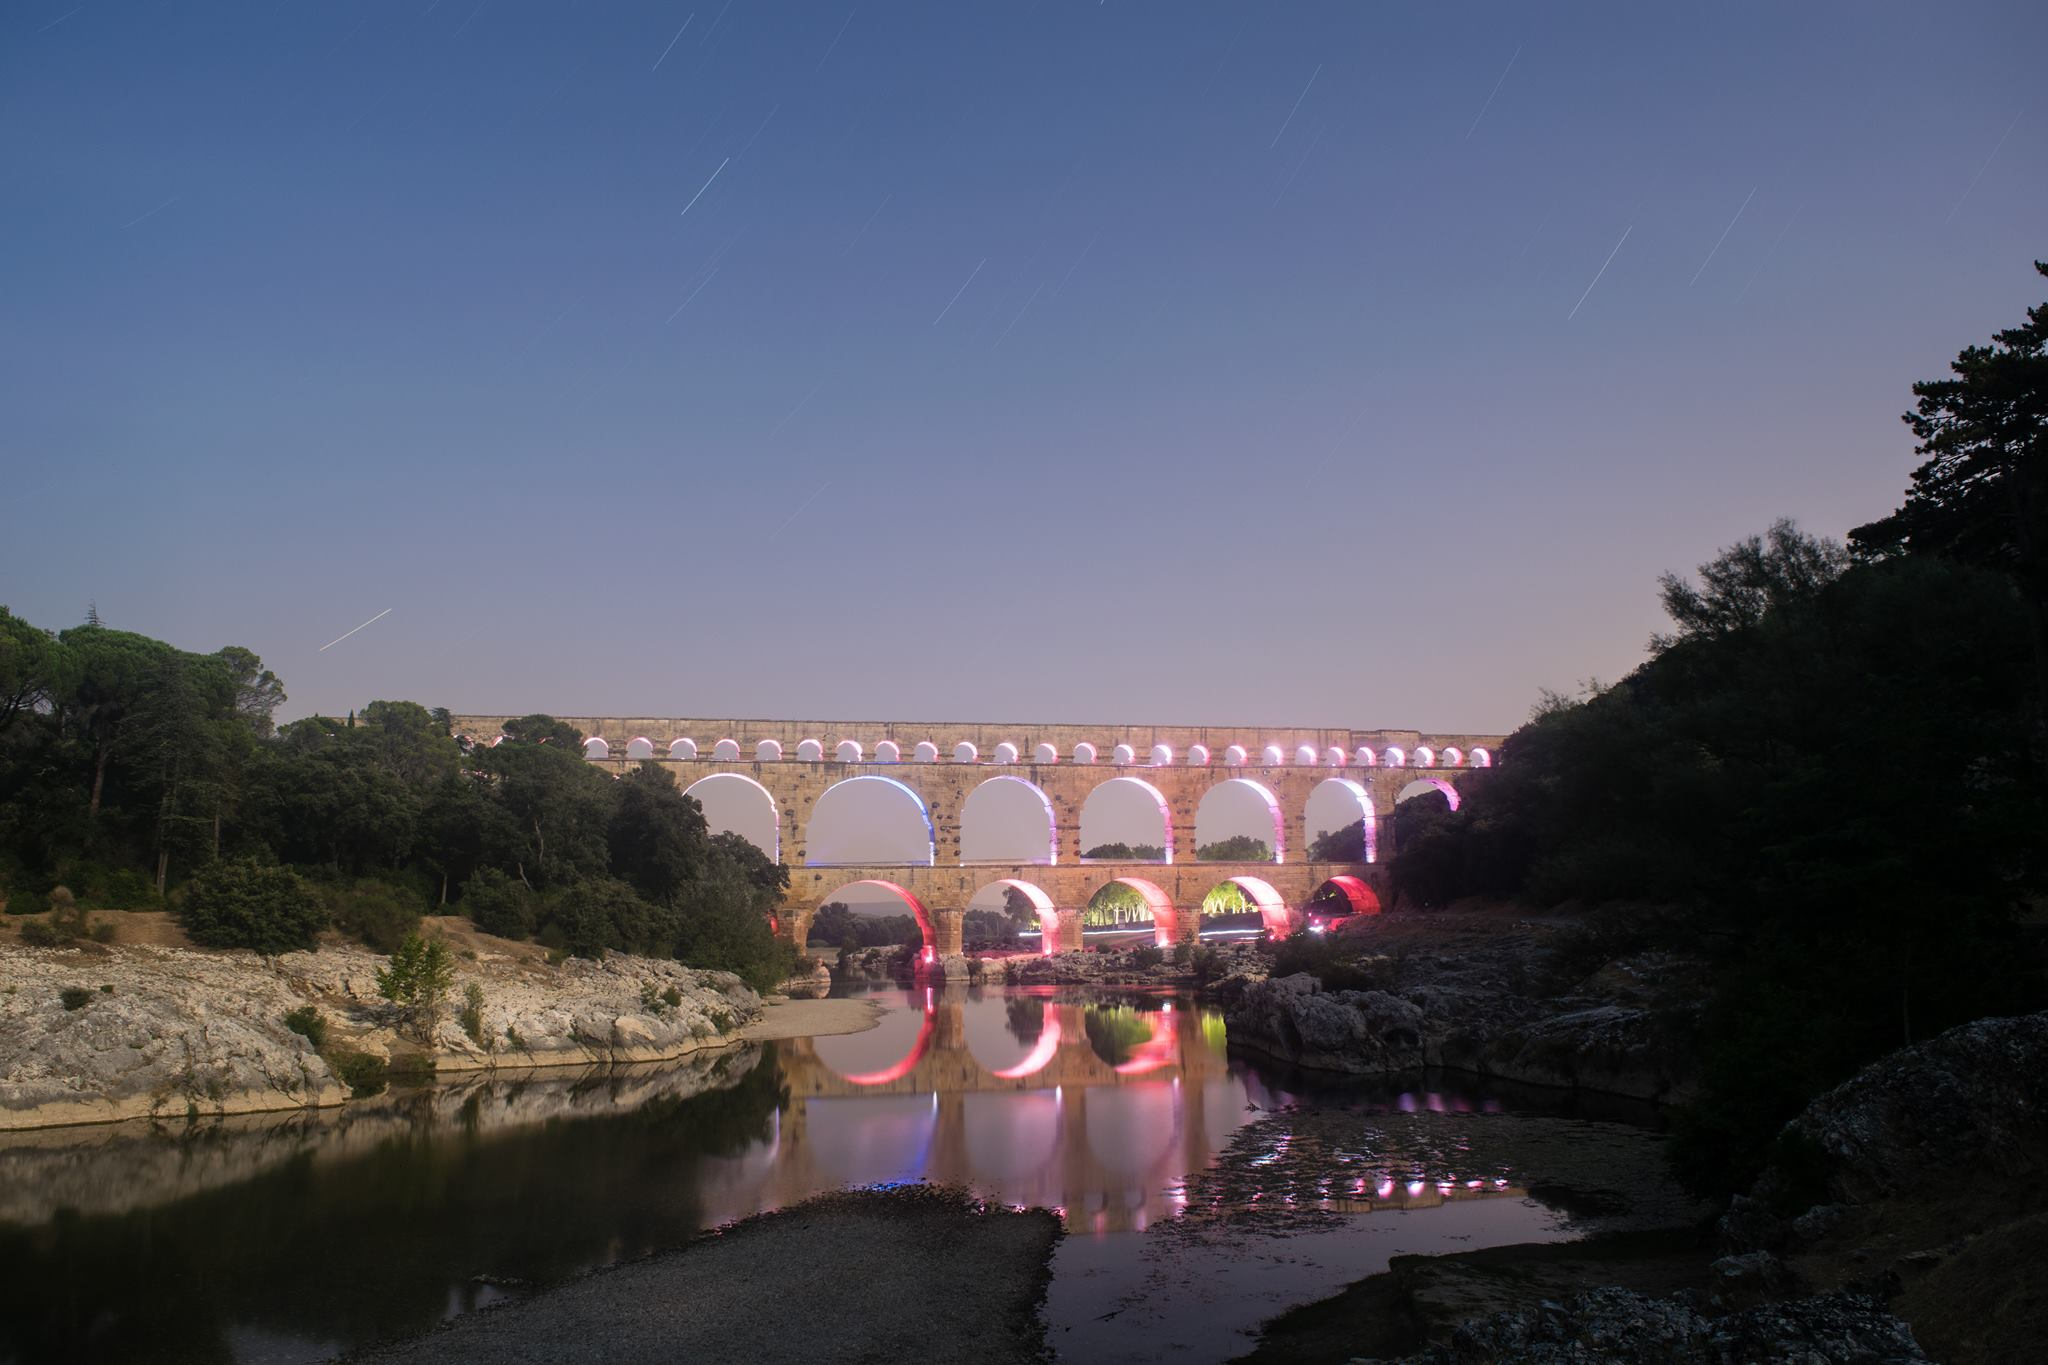 I camped (illegally) near Pont Du Gard and was rewarded with this amazing view (long shutter)